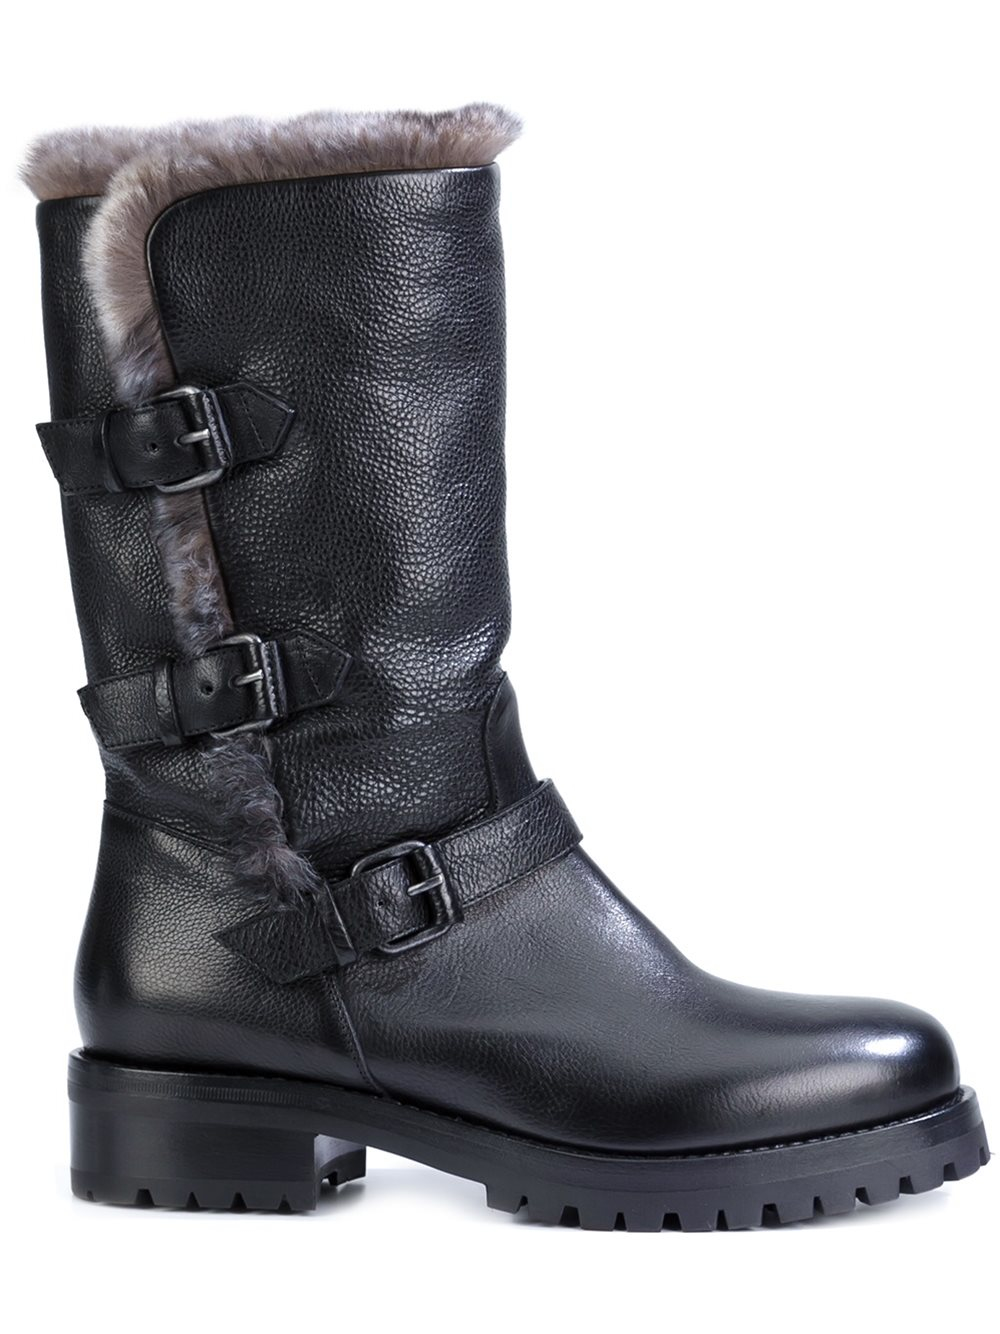 Black Knee High Riding Boots River Island